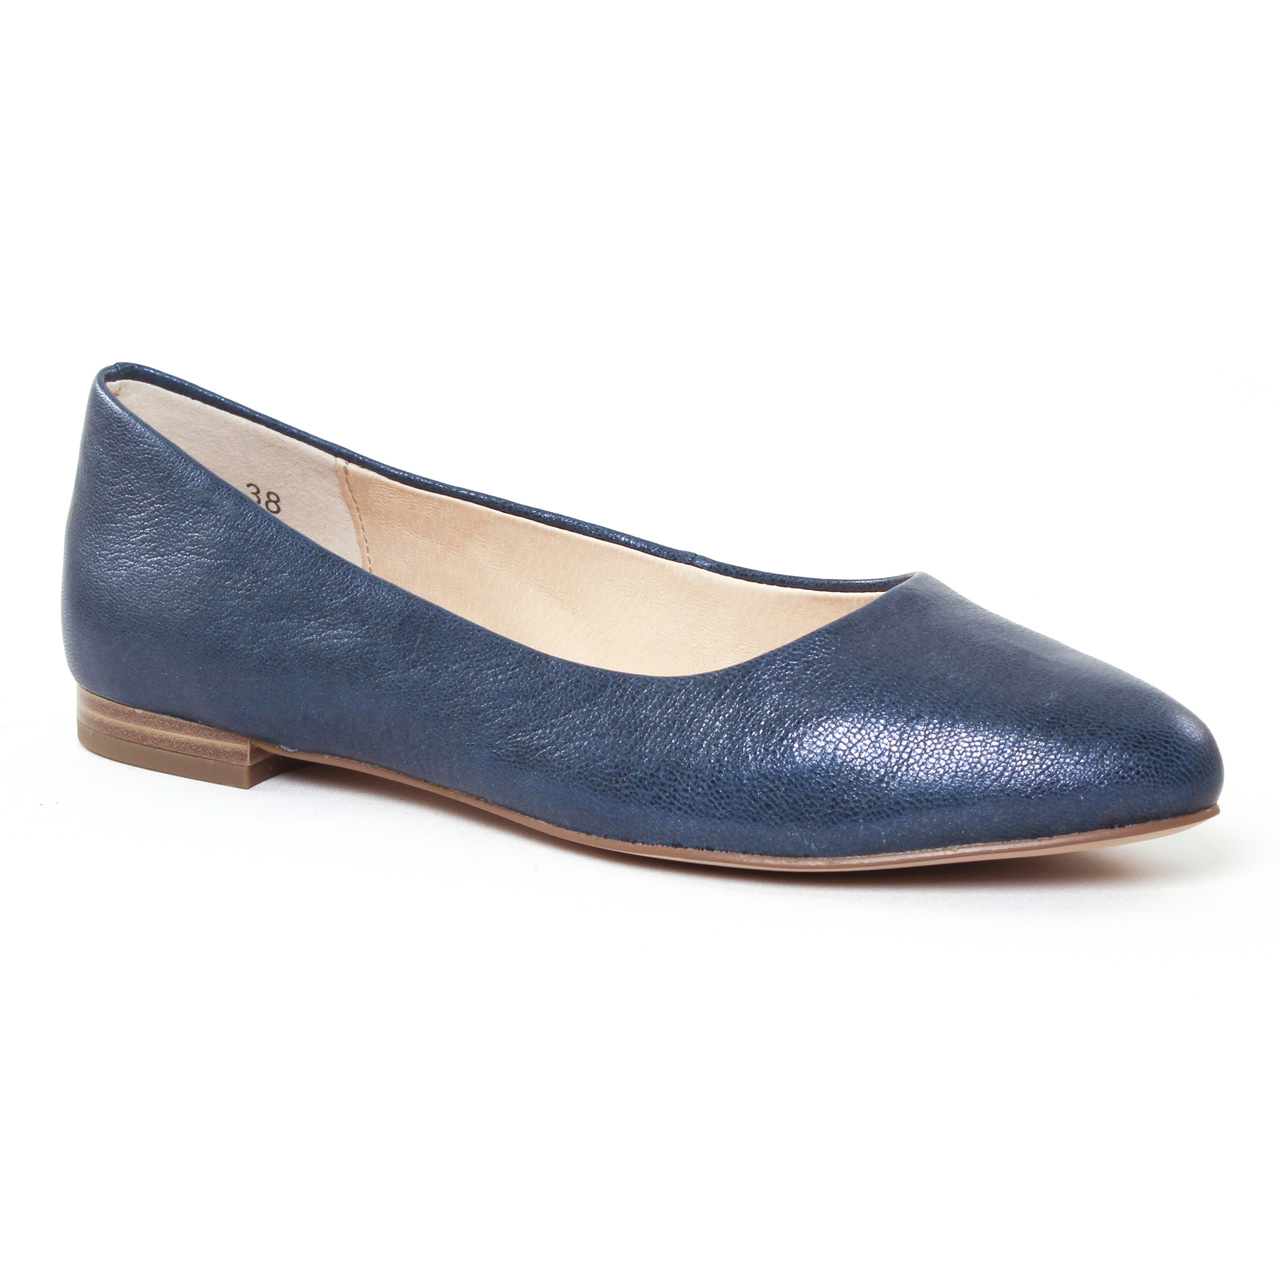 Chaussures Caprice bleues femme mM1Sm